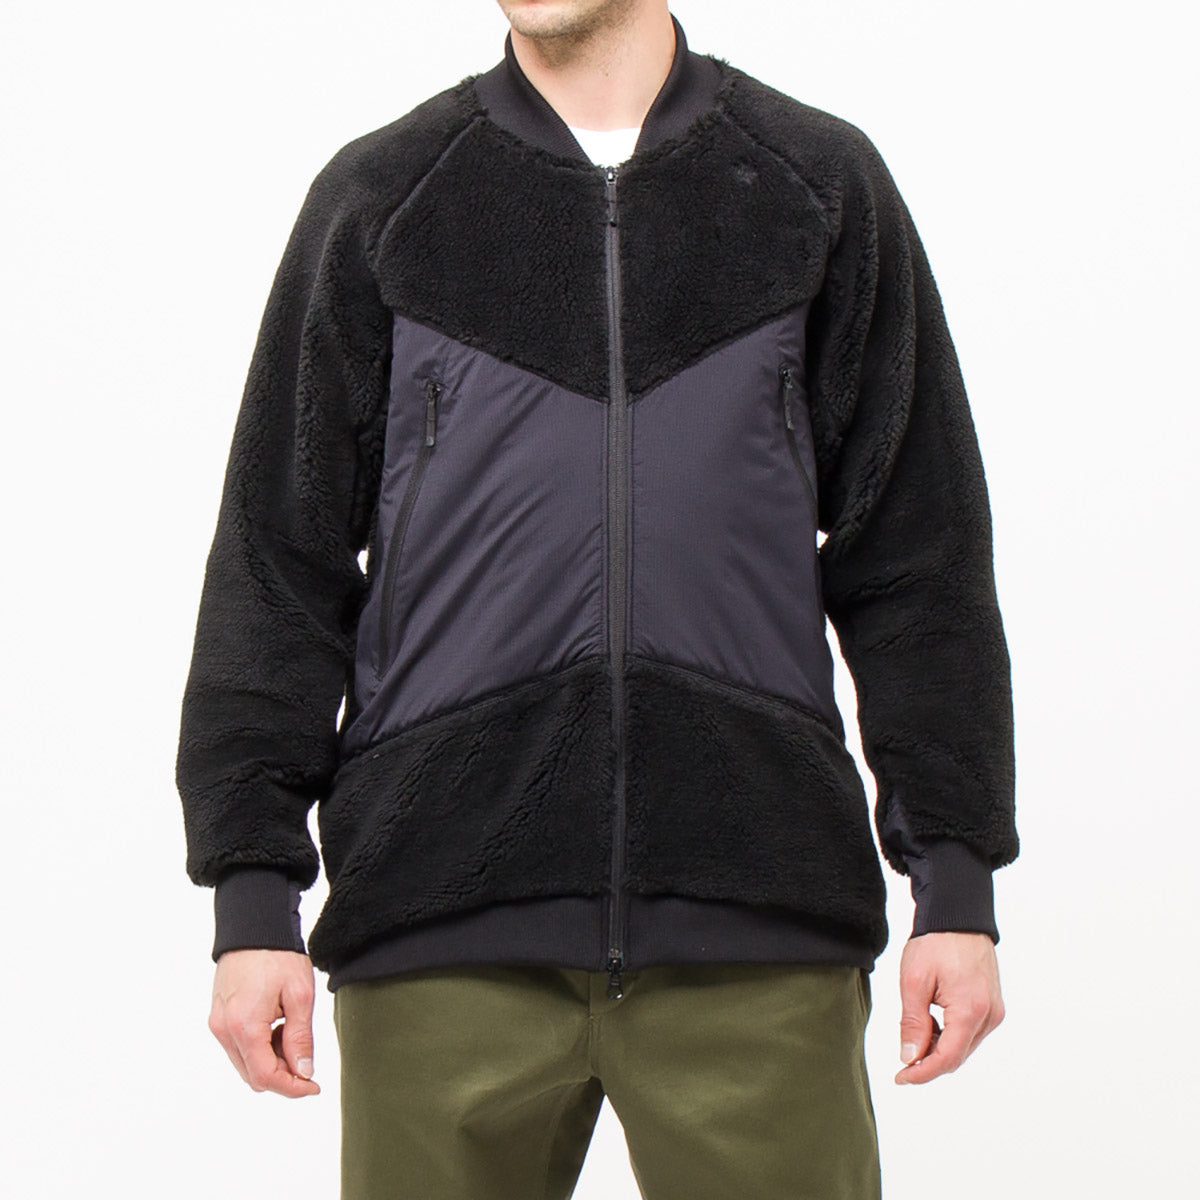 FRONT ZIP FLEECE